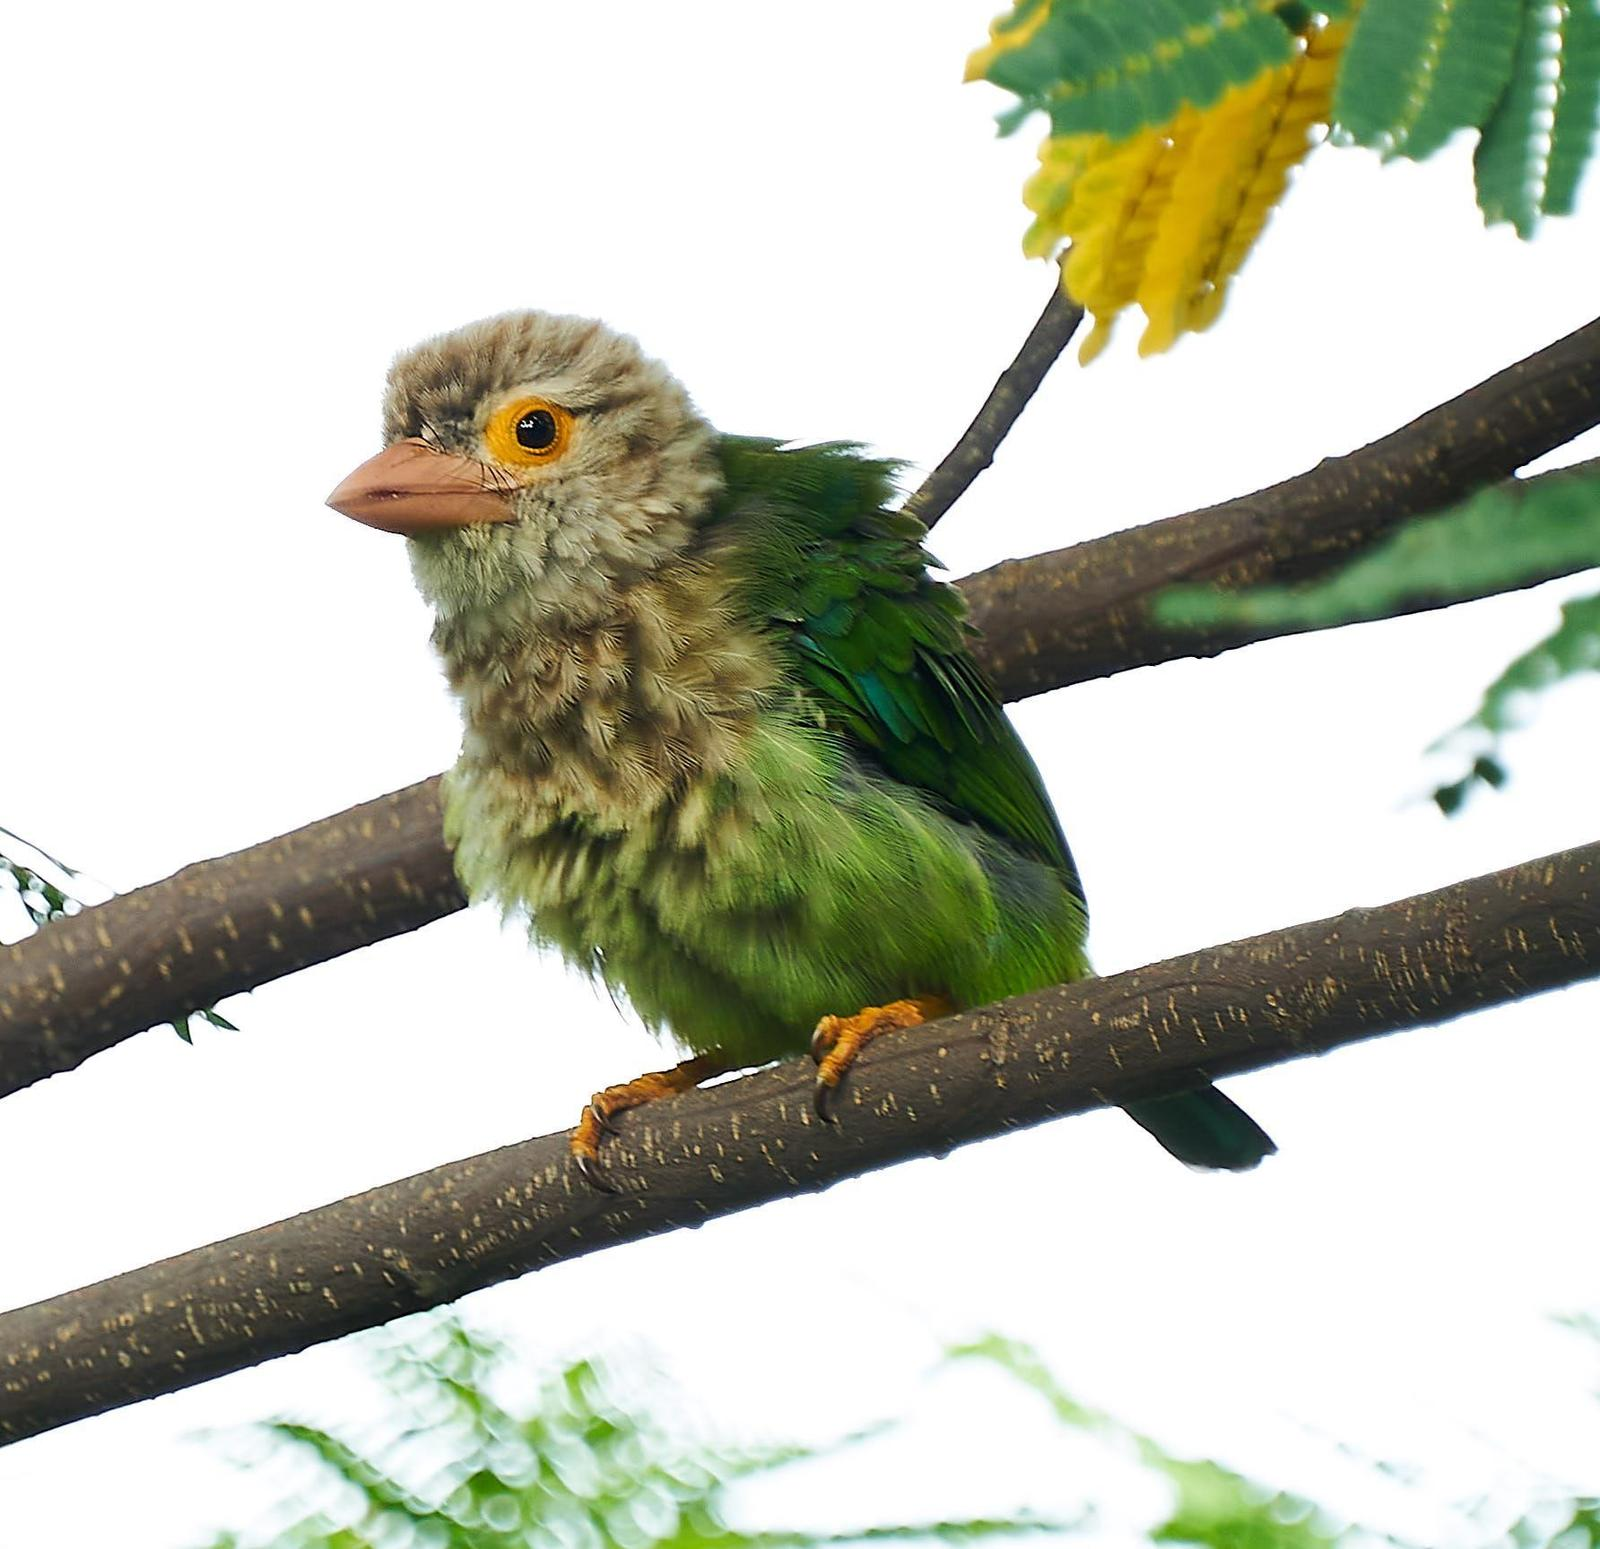 Lineated Barbet Photo by Steven Cheong